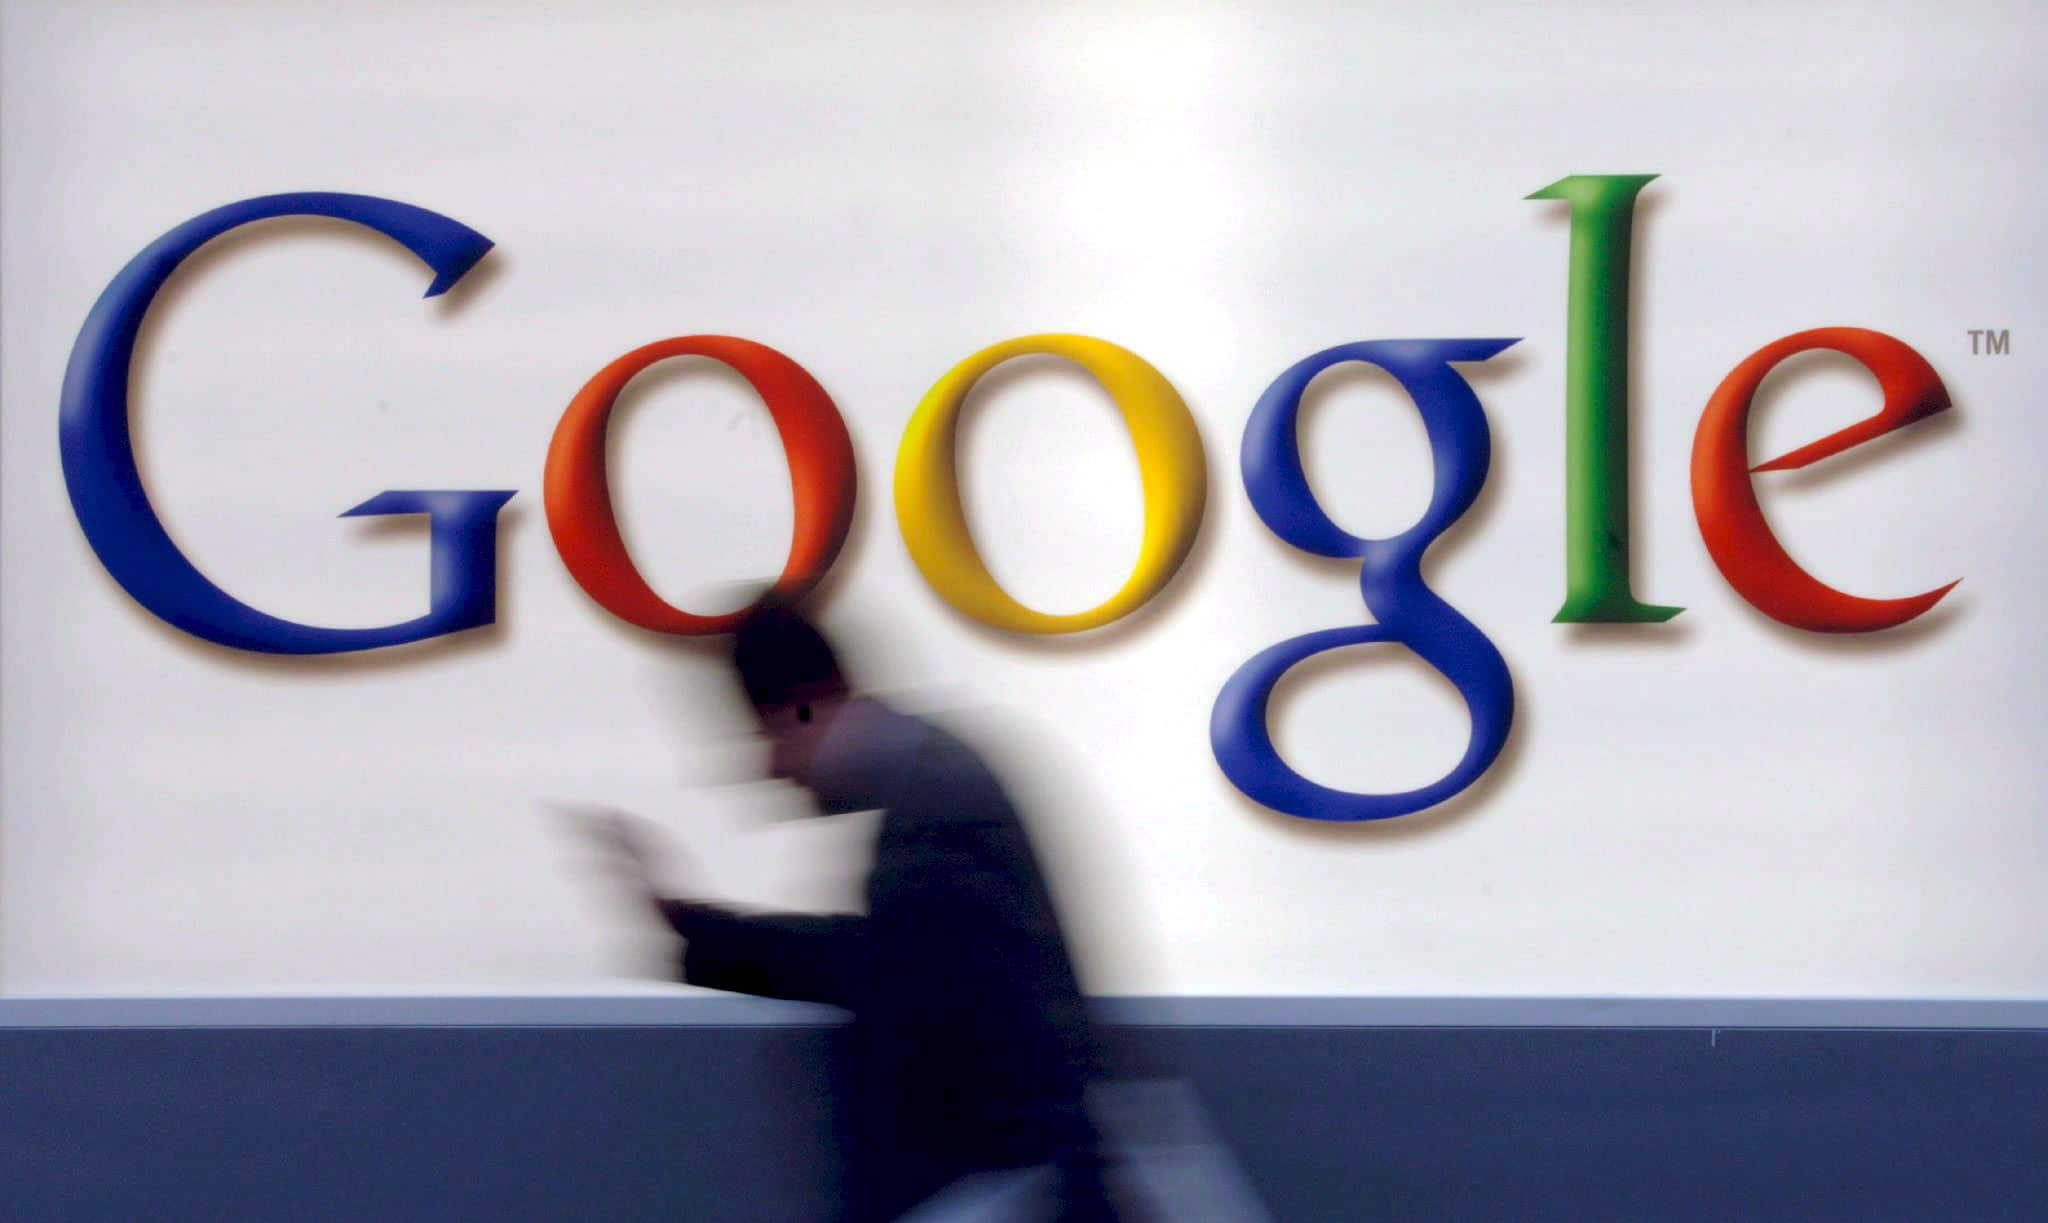 h 51369975 - Google admits it accidentally sent users' private videos to strangers